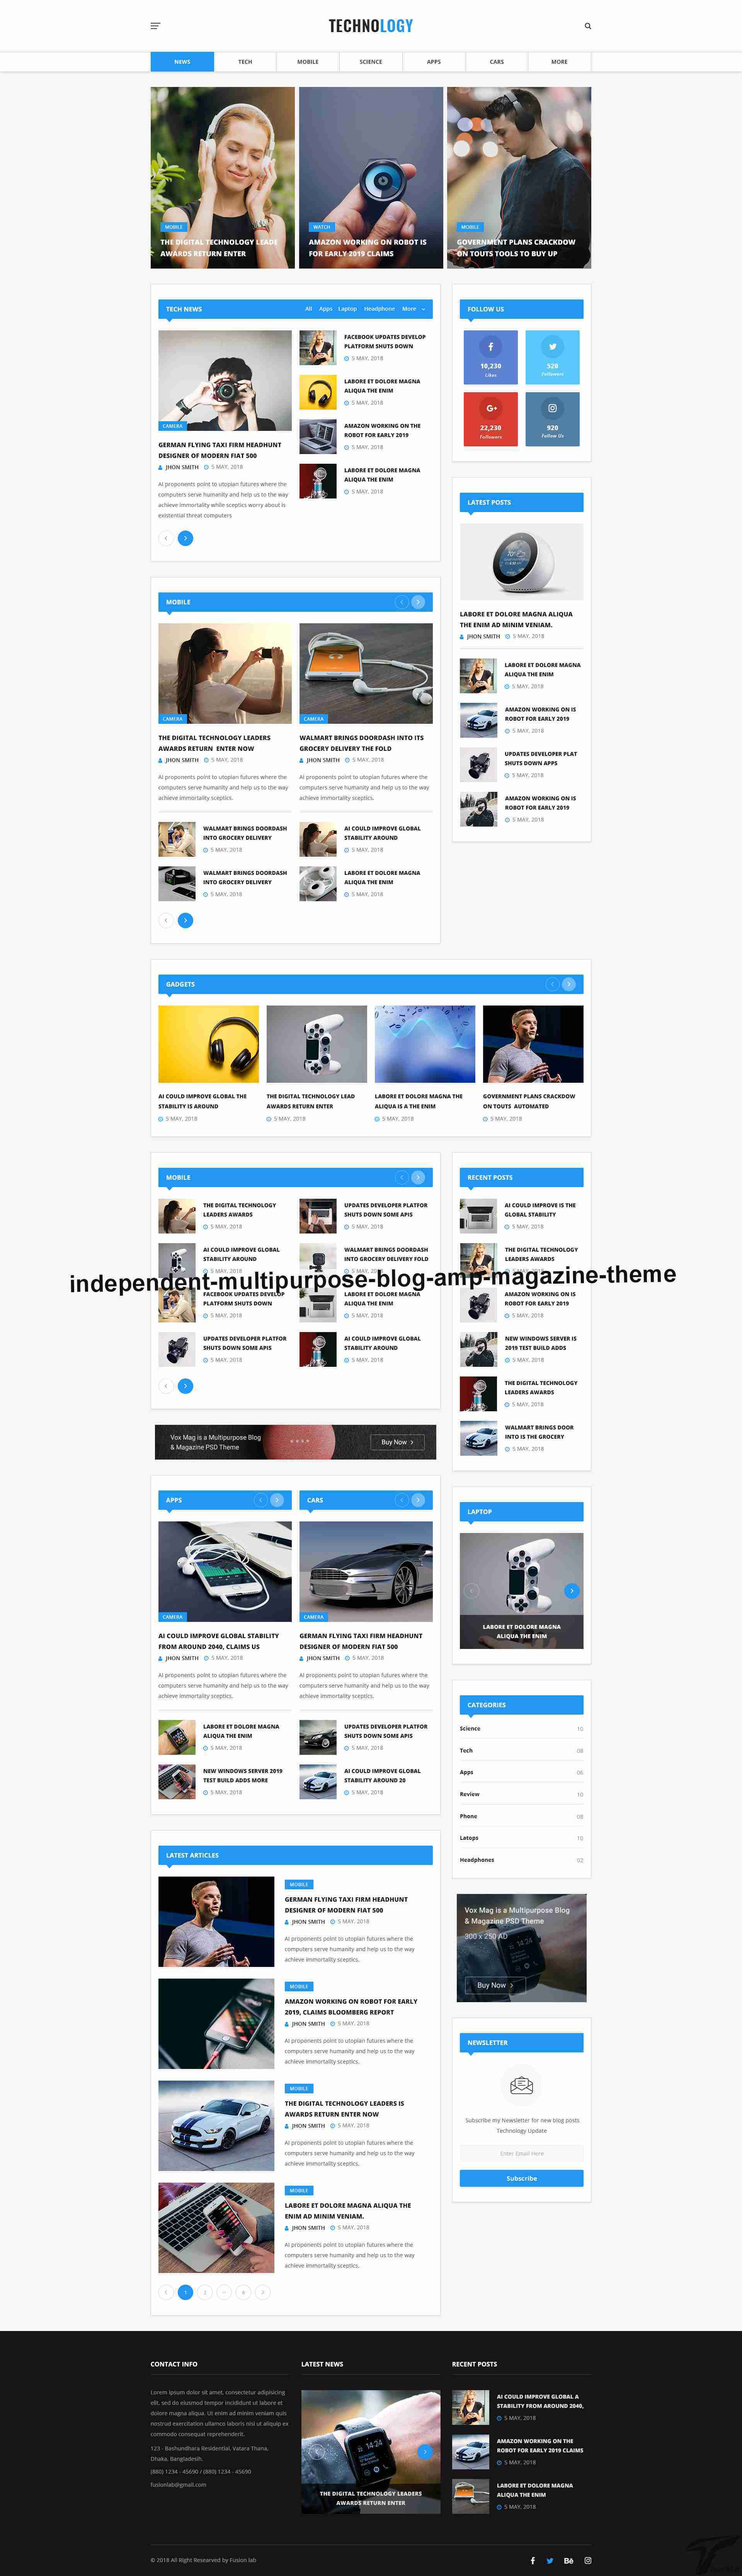 https://images.besthemes.com/images/h1_independent-multipurpose-blog-amp-magazine-theme5-_-249989416/Theme-s20s-Preview/04-Technology.jpg